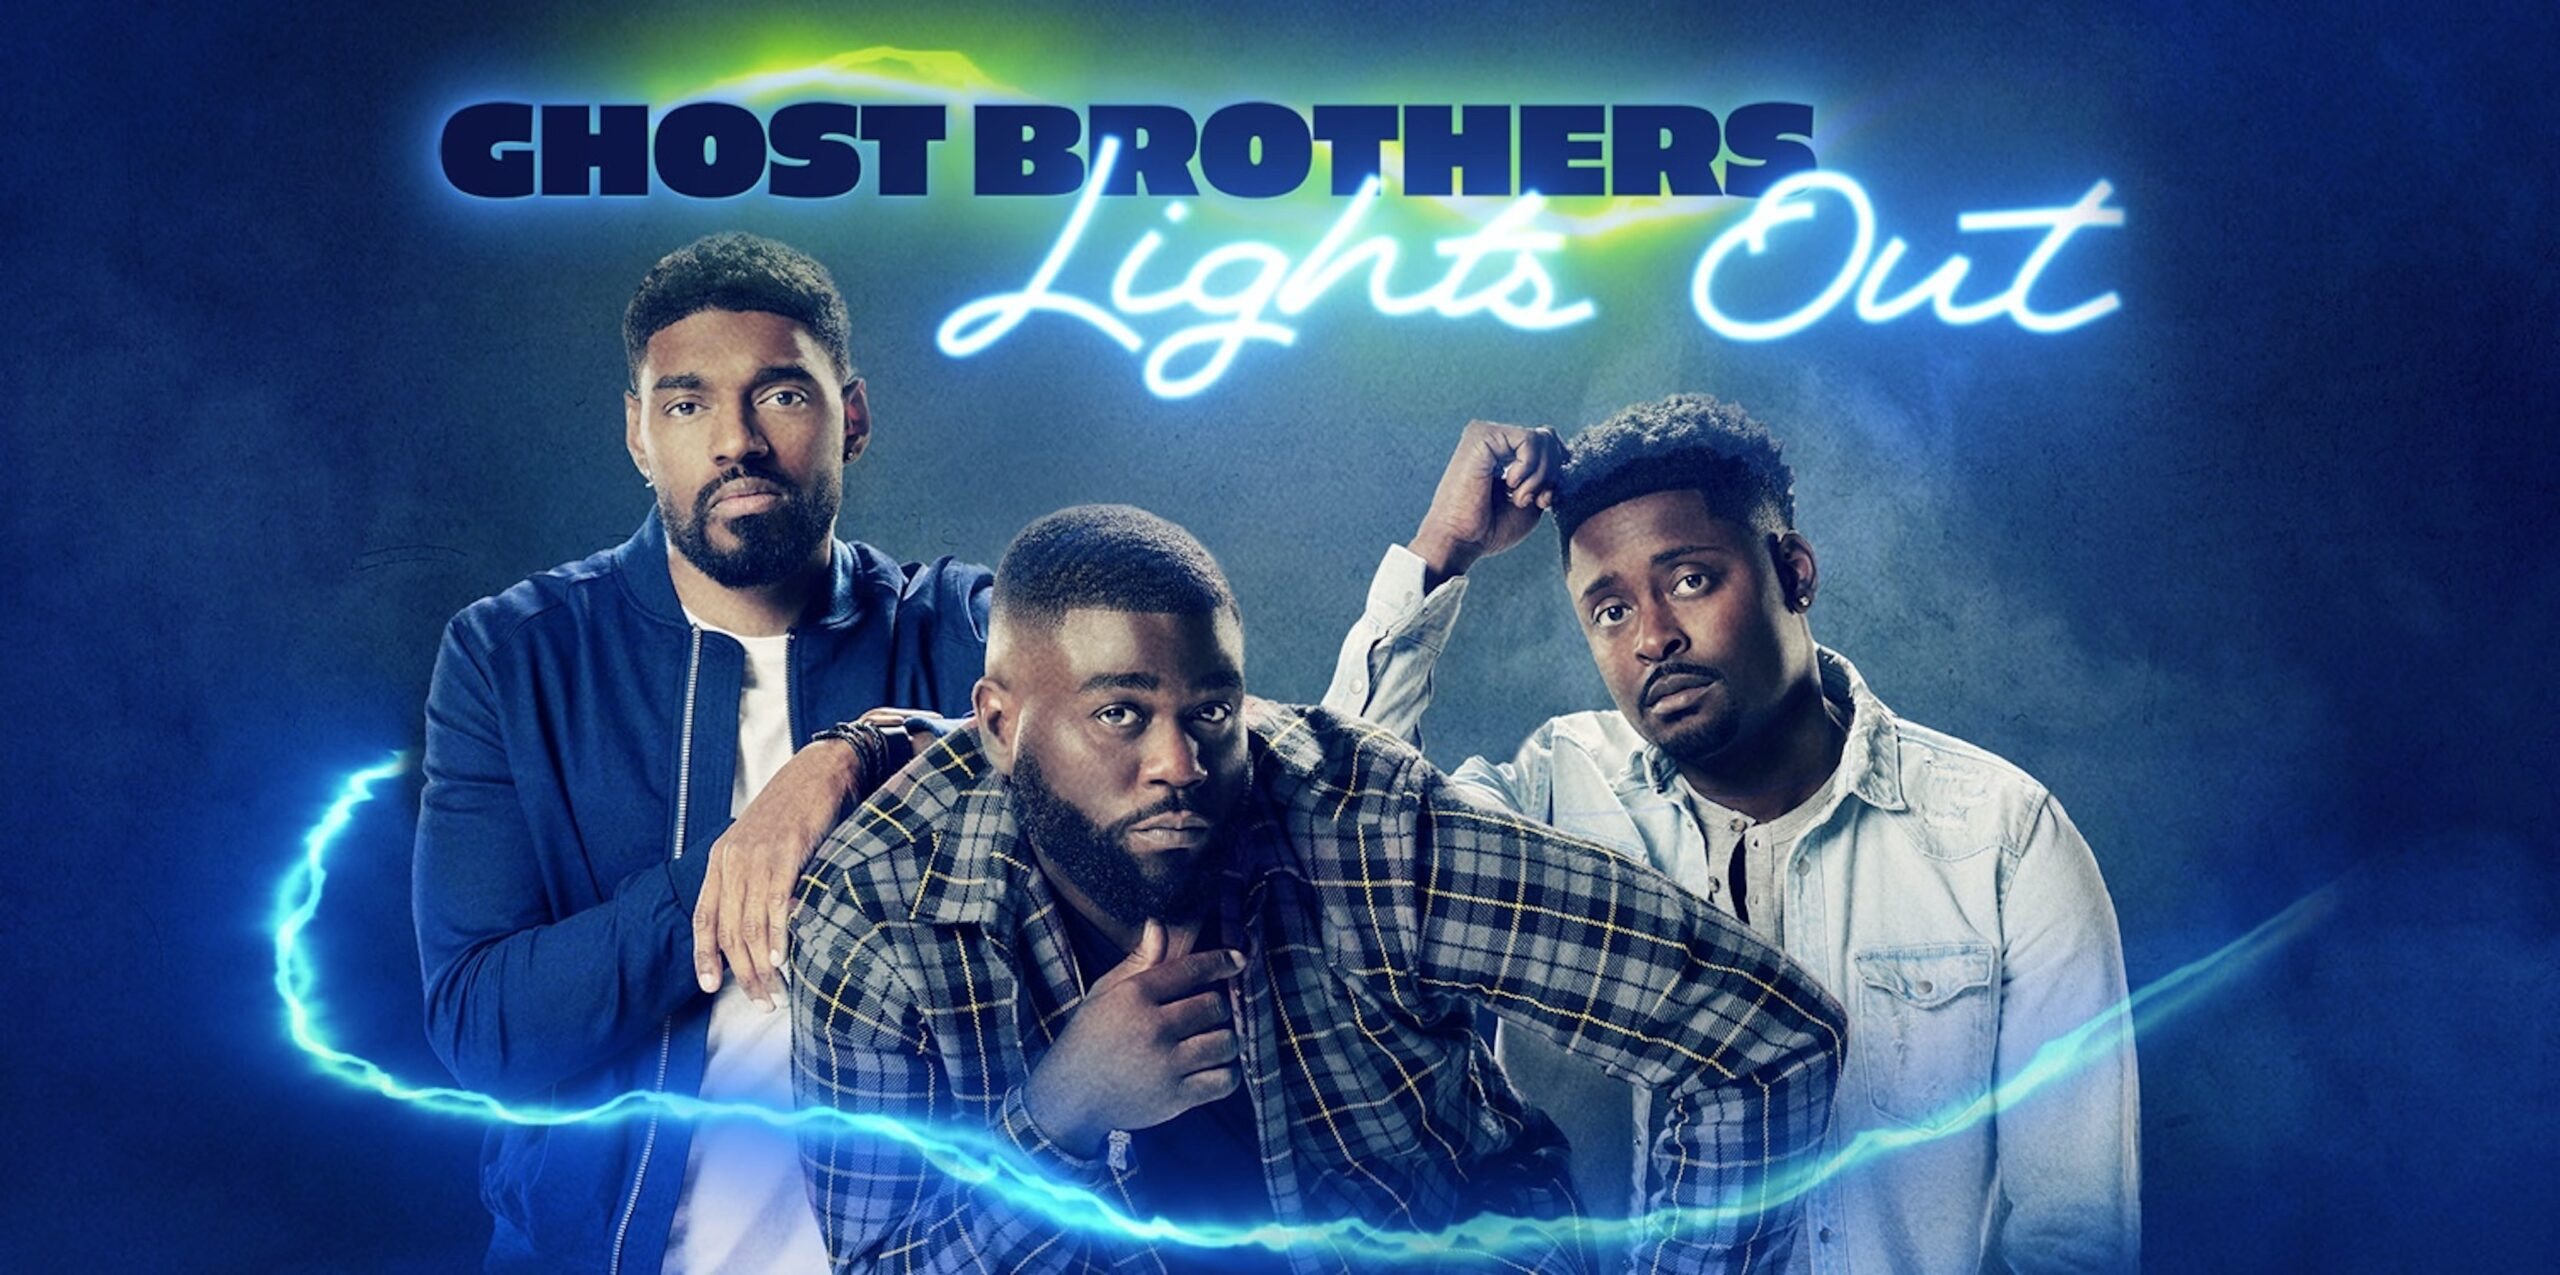 Ghost Brothers Pic